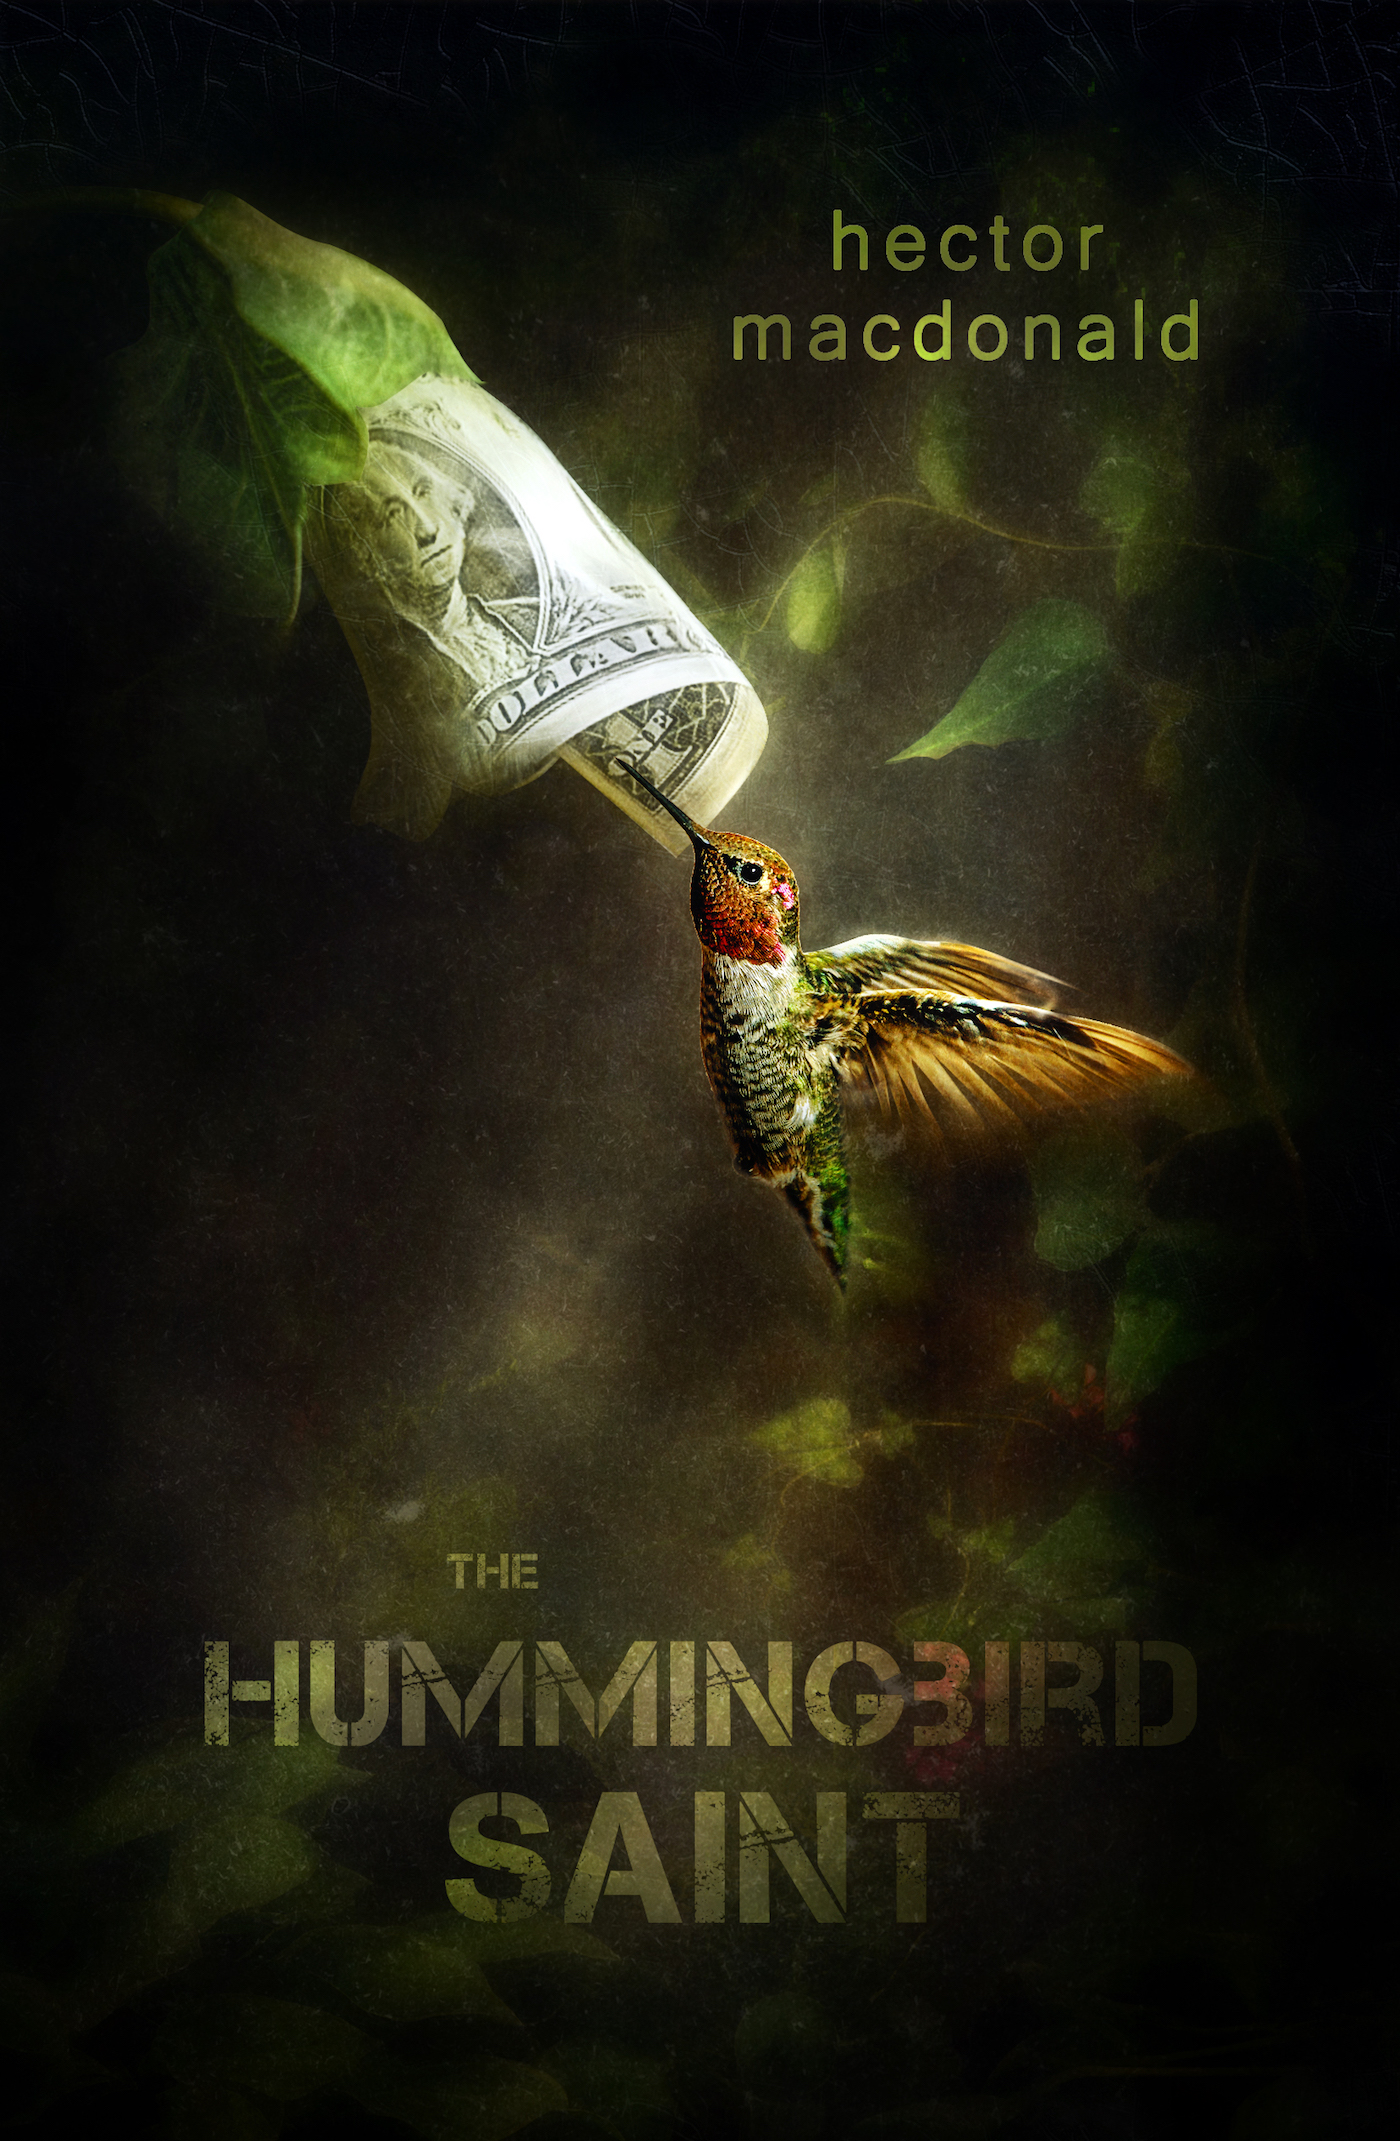 The Hummingbird Saint